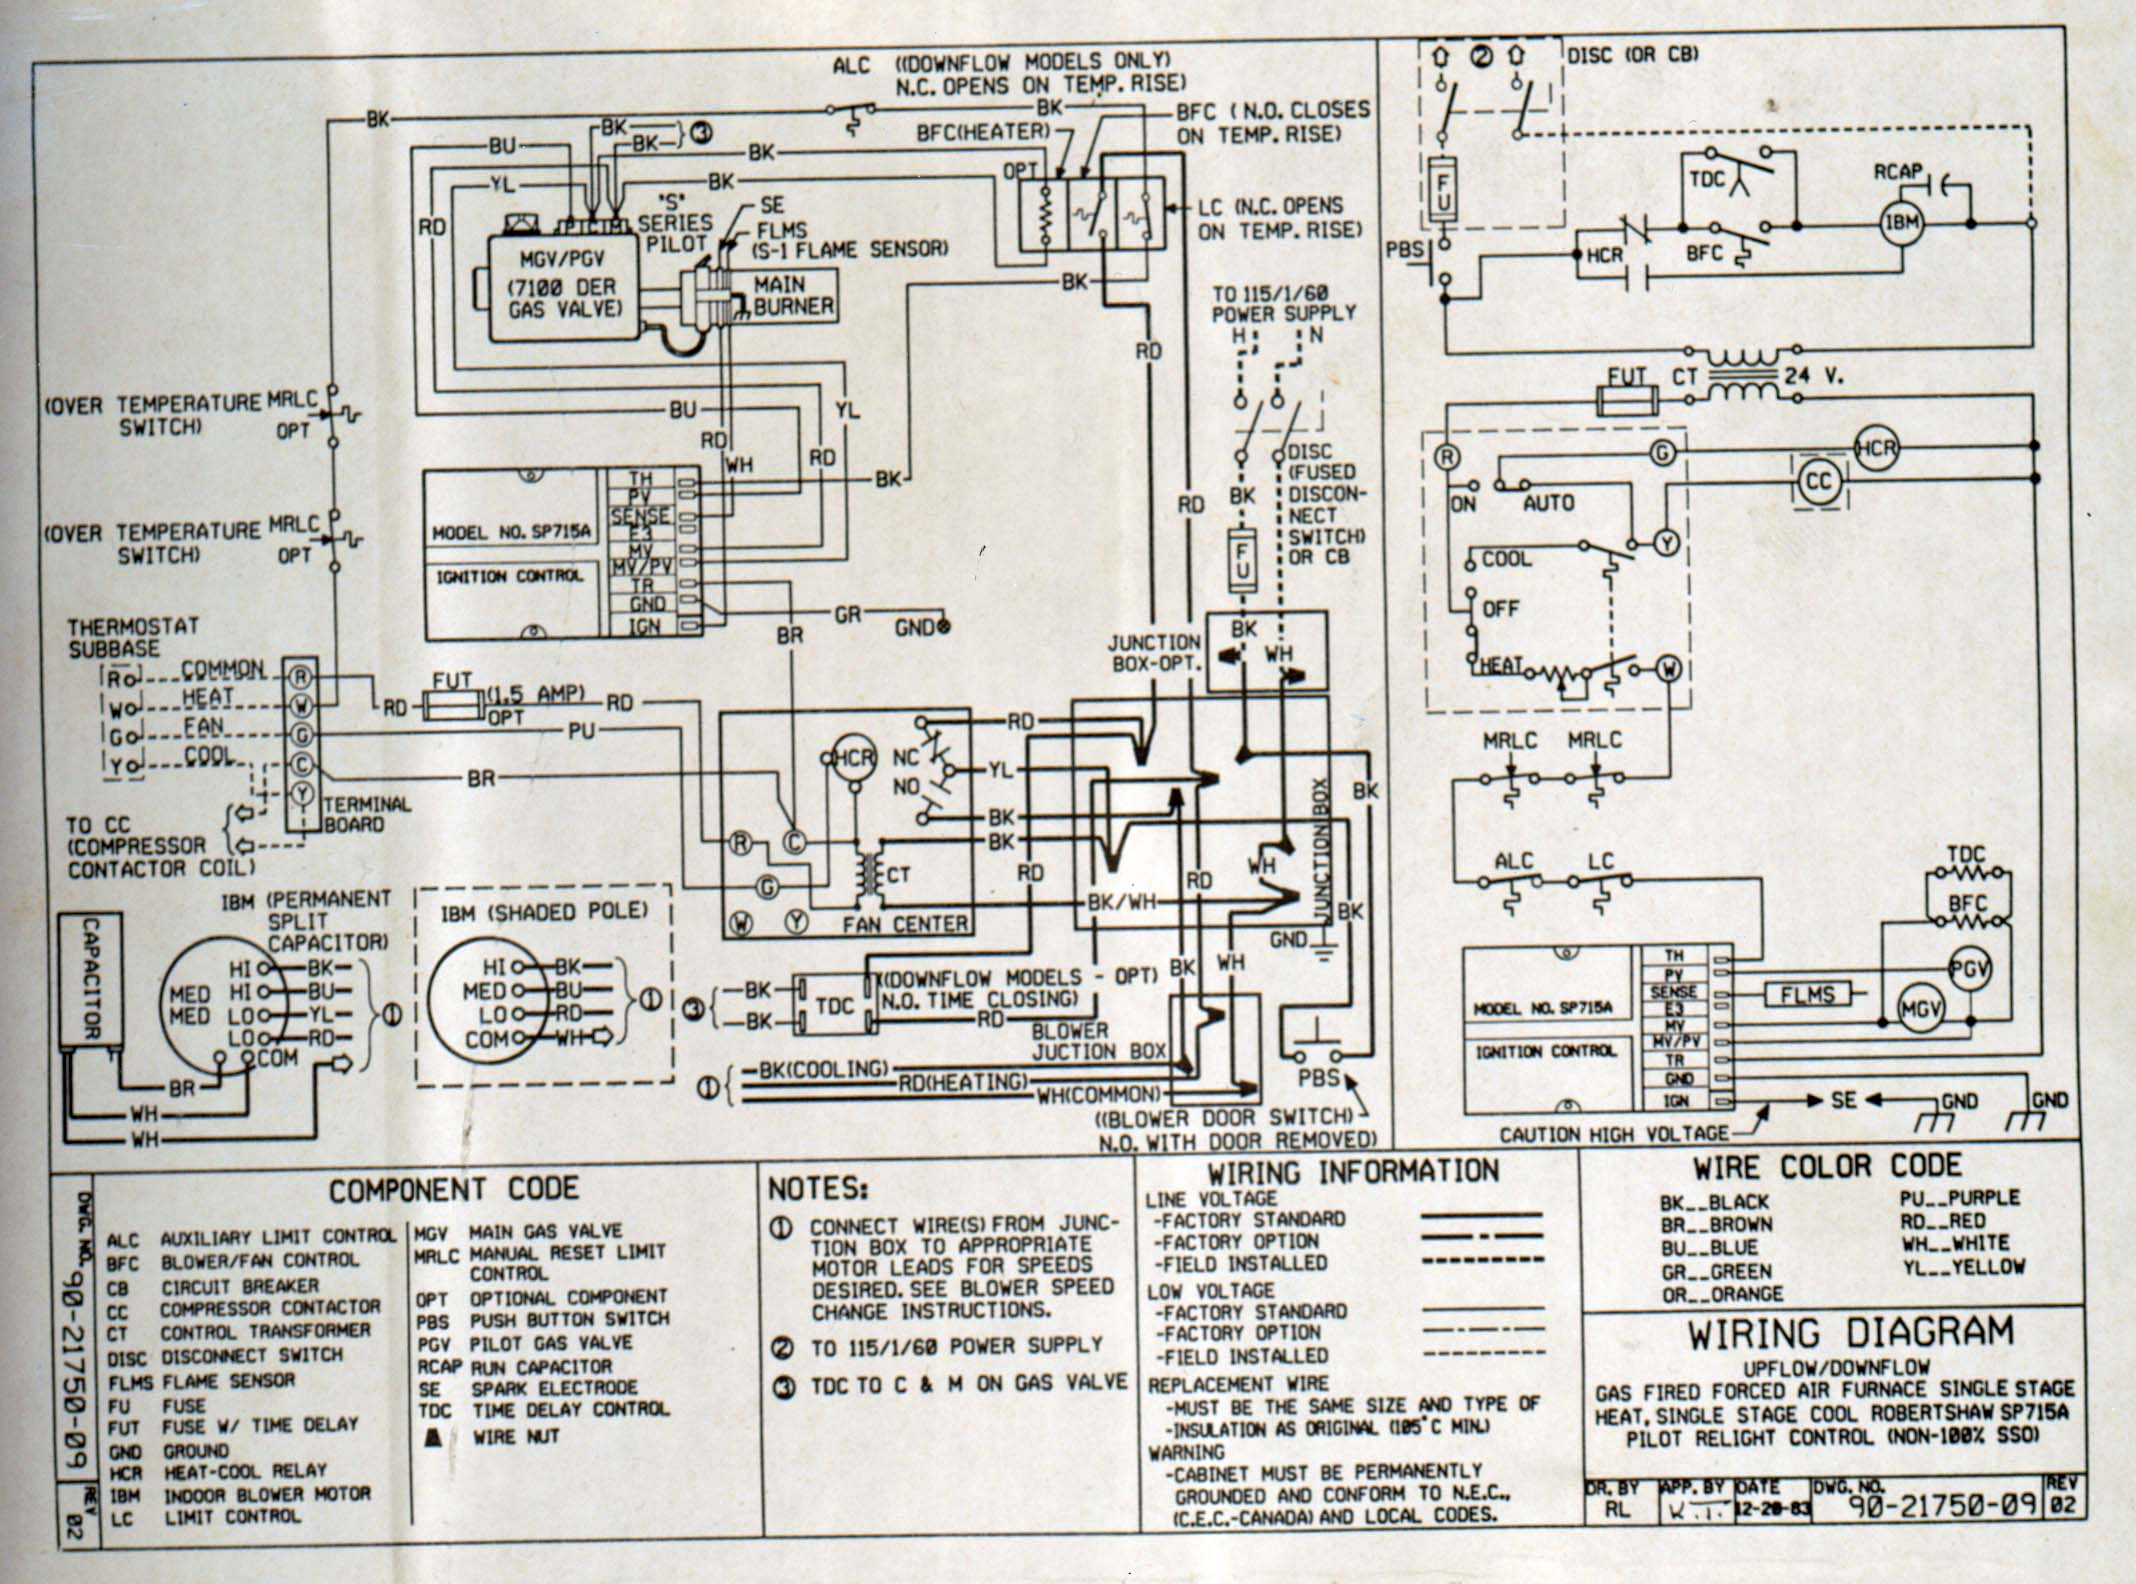 398aaw Manual Electrical Outlet Wiring Diagram Http Wwwhomerepairforumcom Forum Array Bryant Furnace Schematic Rh Bryantfurnaceyuzento Blogspot Com